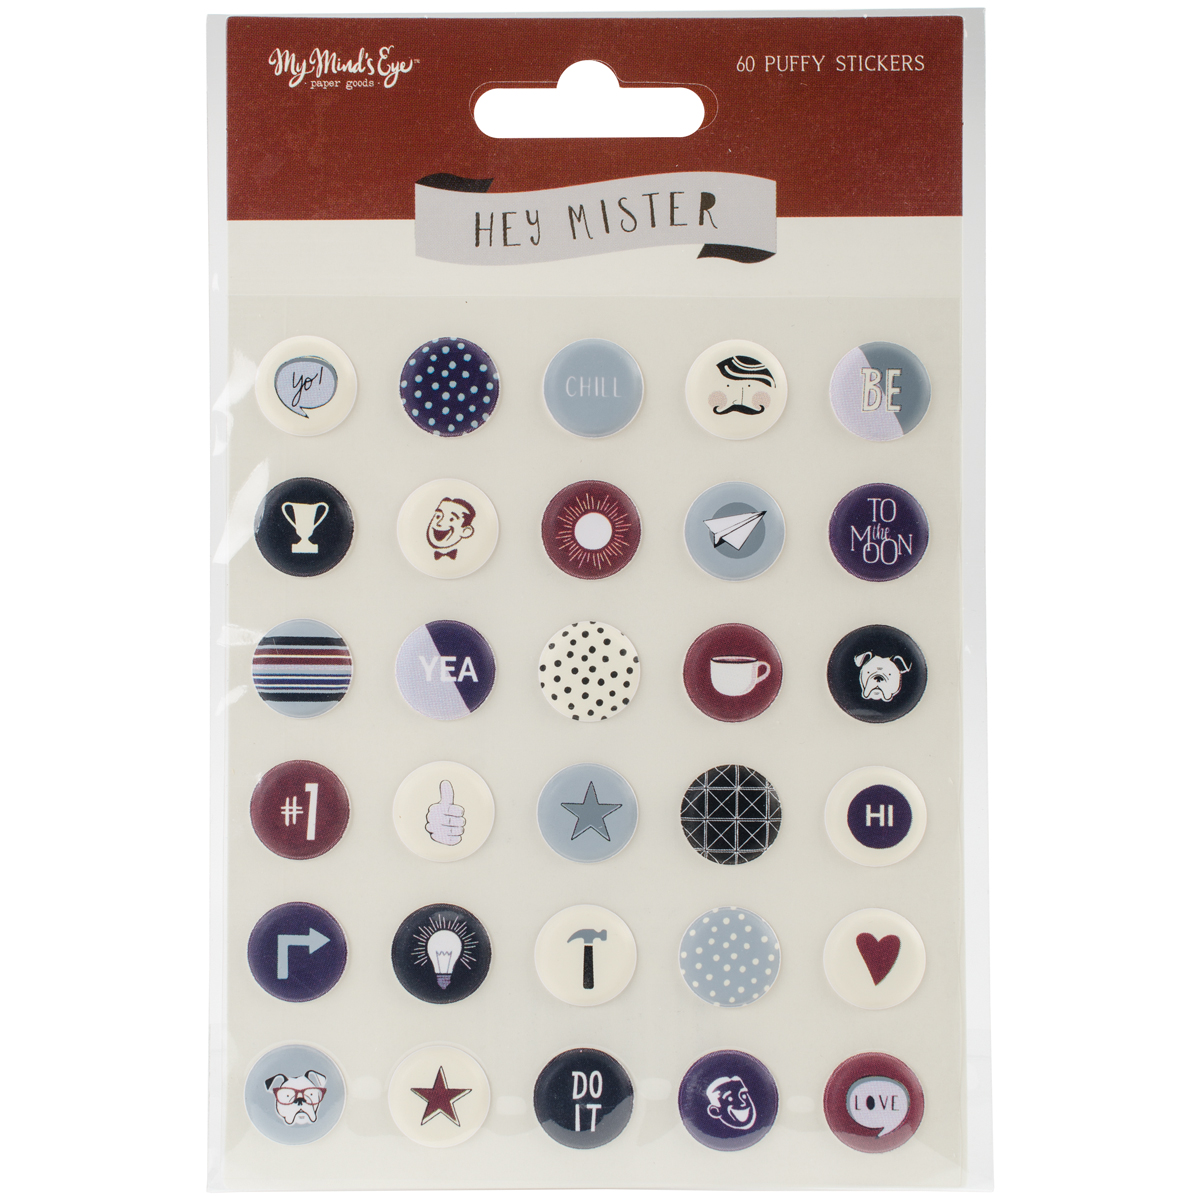 My Minds Eye - Hey Mister Collection - Puffy Stickers